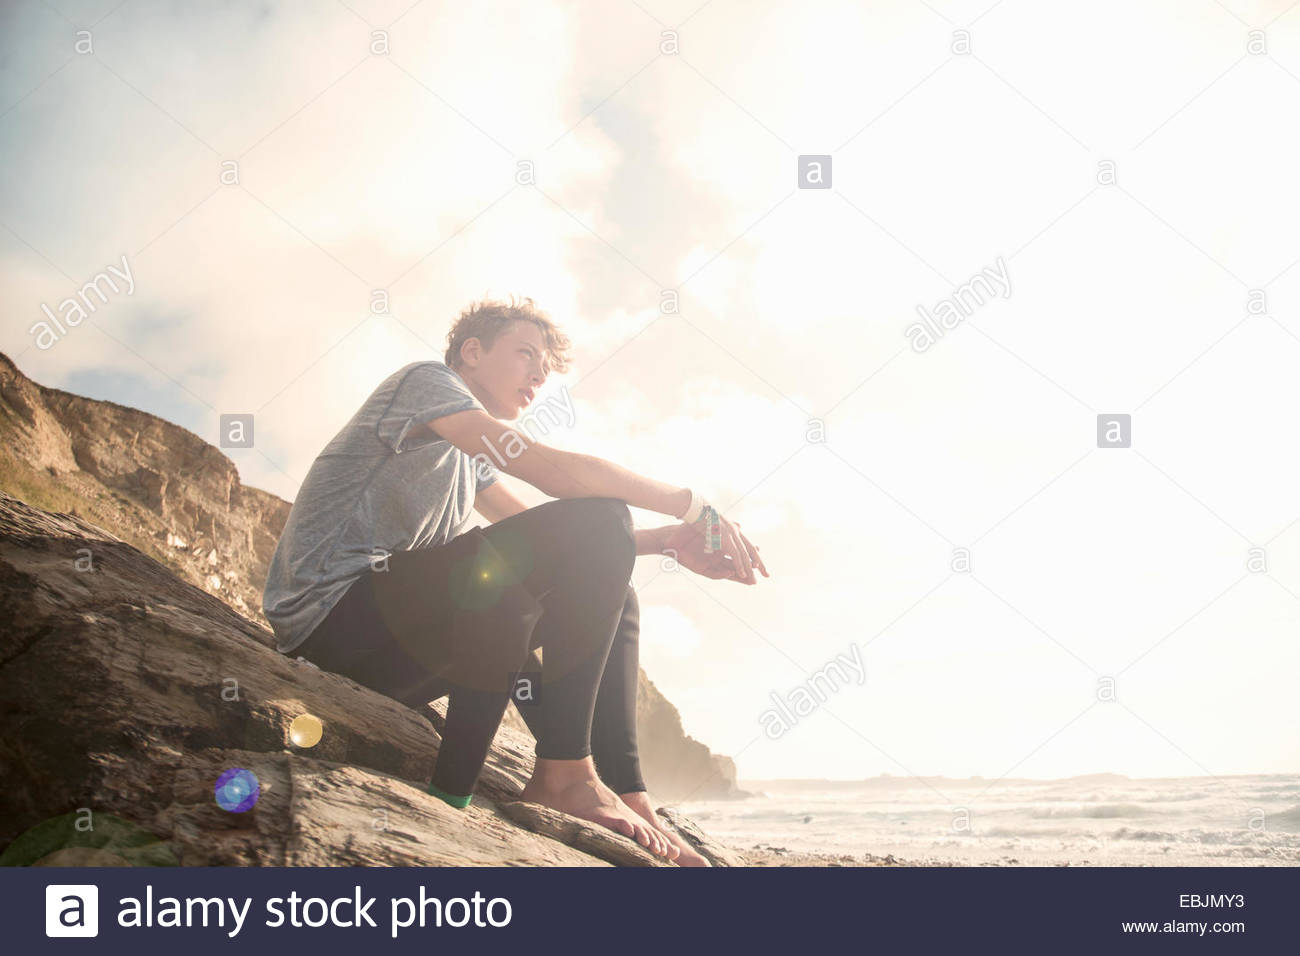 Teenage boy sitting on rocks Photo Stock